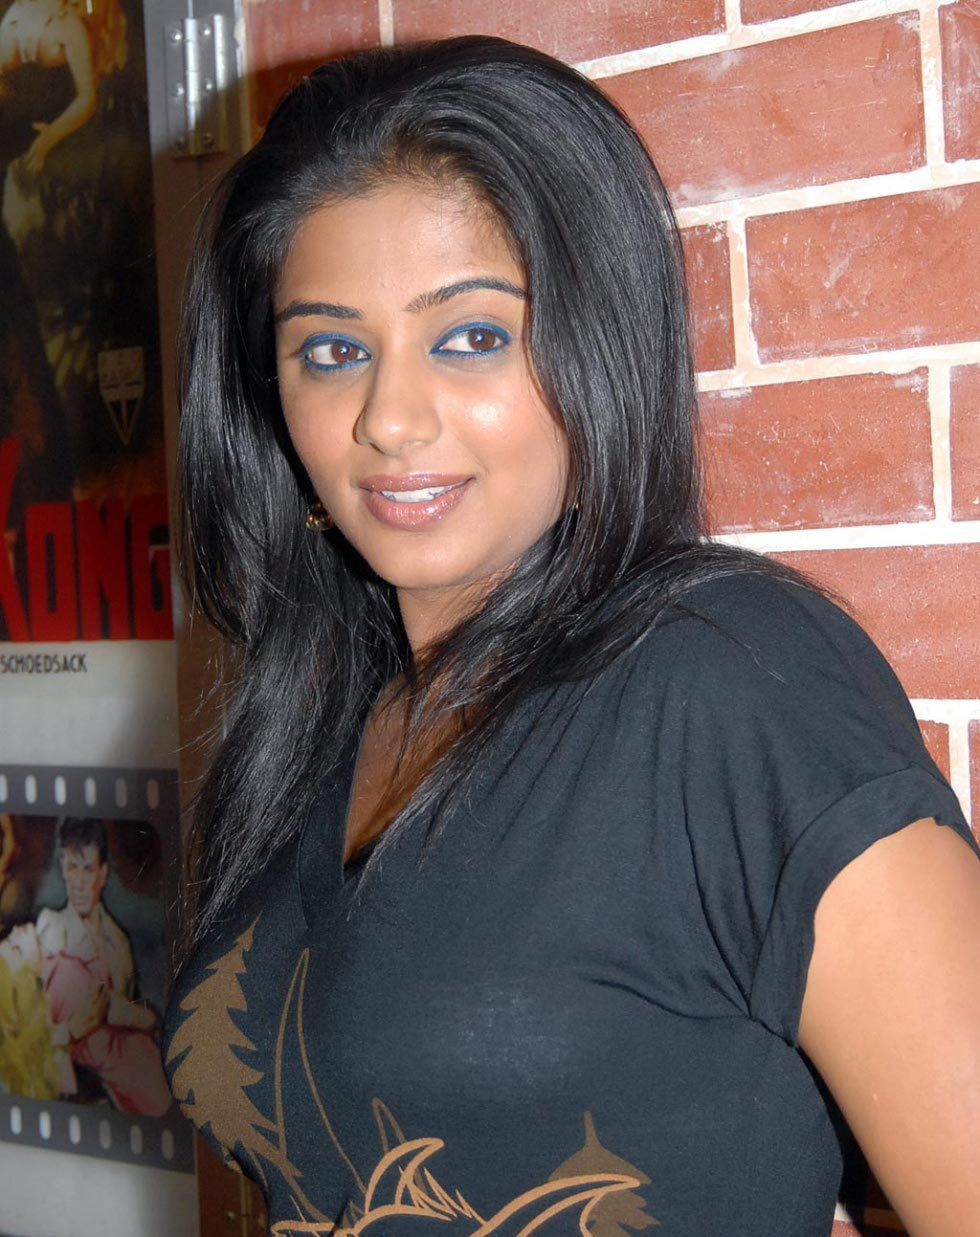 priyamani shirt tight tamil bra actress latest boobs indian telugu desi bollywood unseen priya boob south wallpapers stills